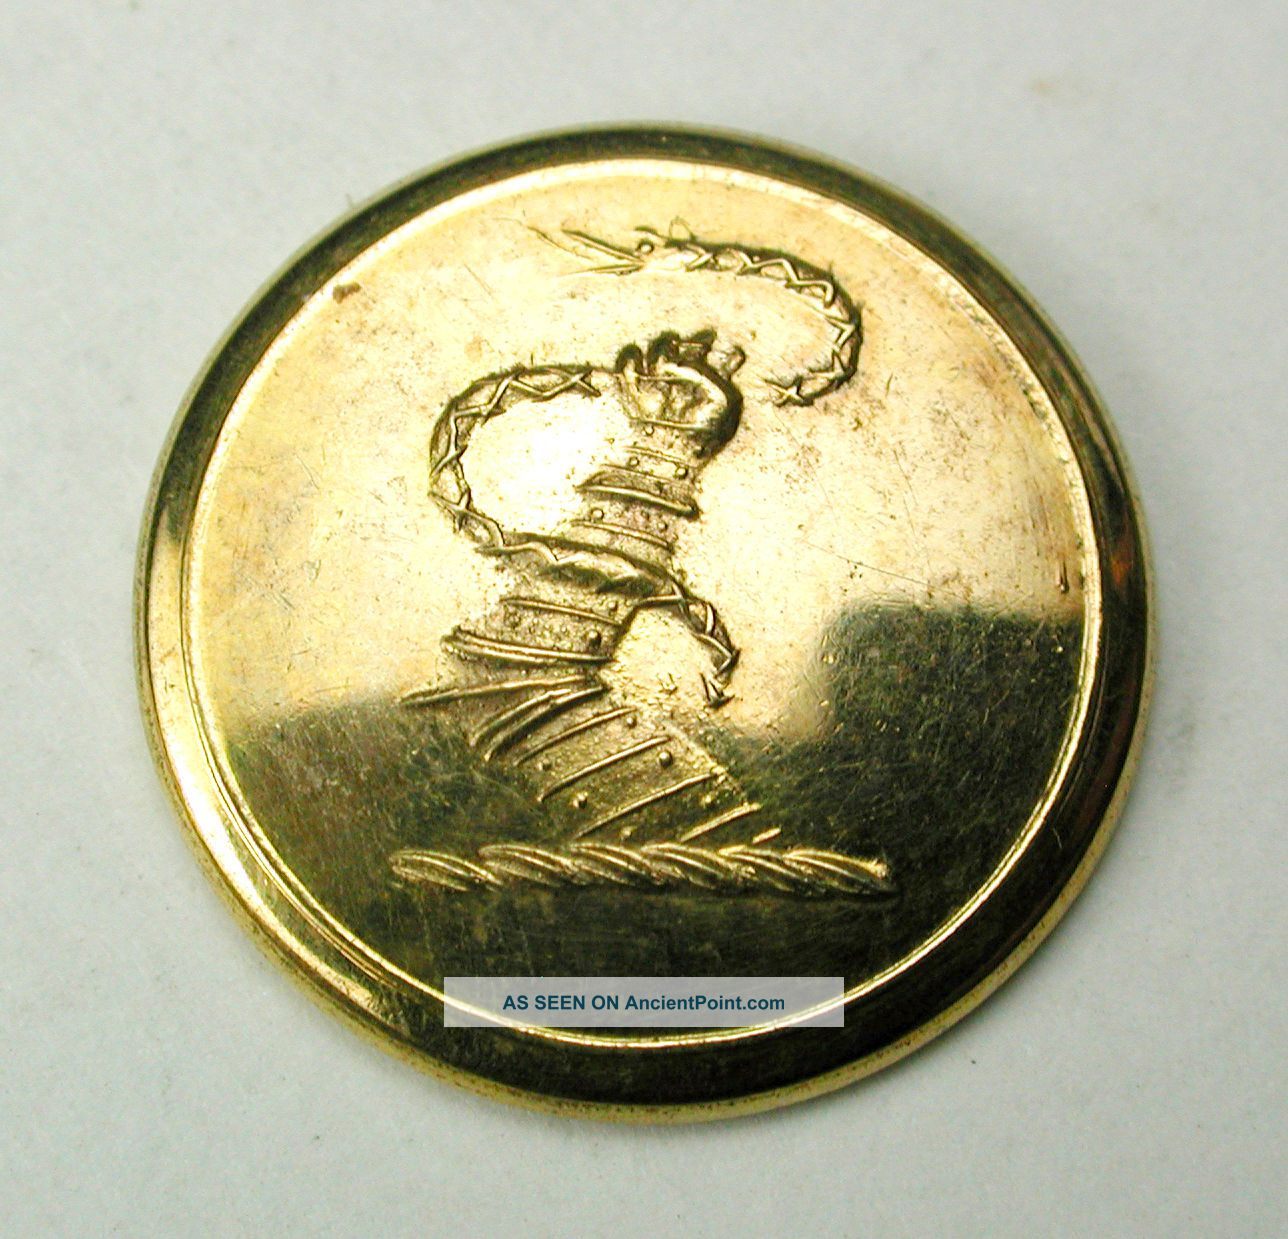 Antique Brass Livery Button - Armored Arm Holds A Serpent / Snake - 5/8 Buttons photo